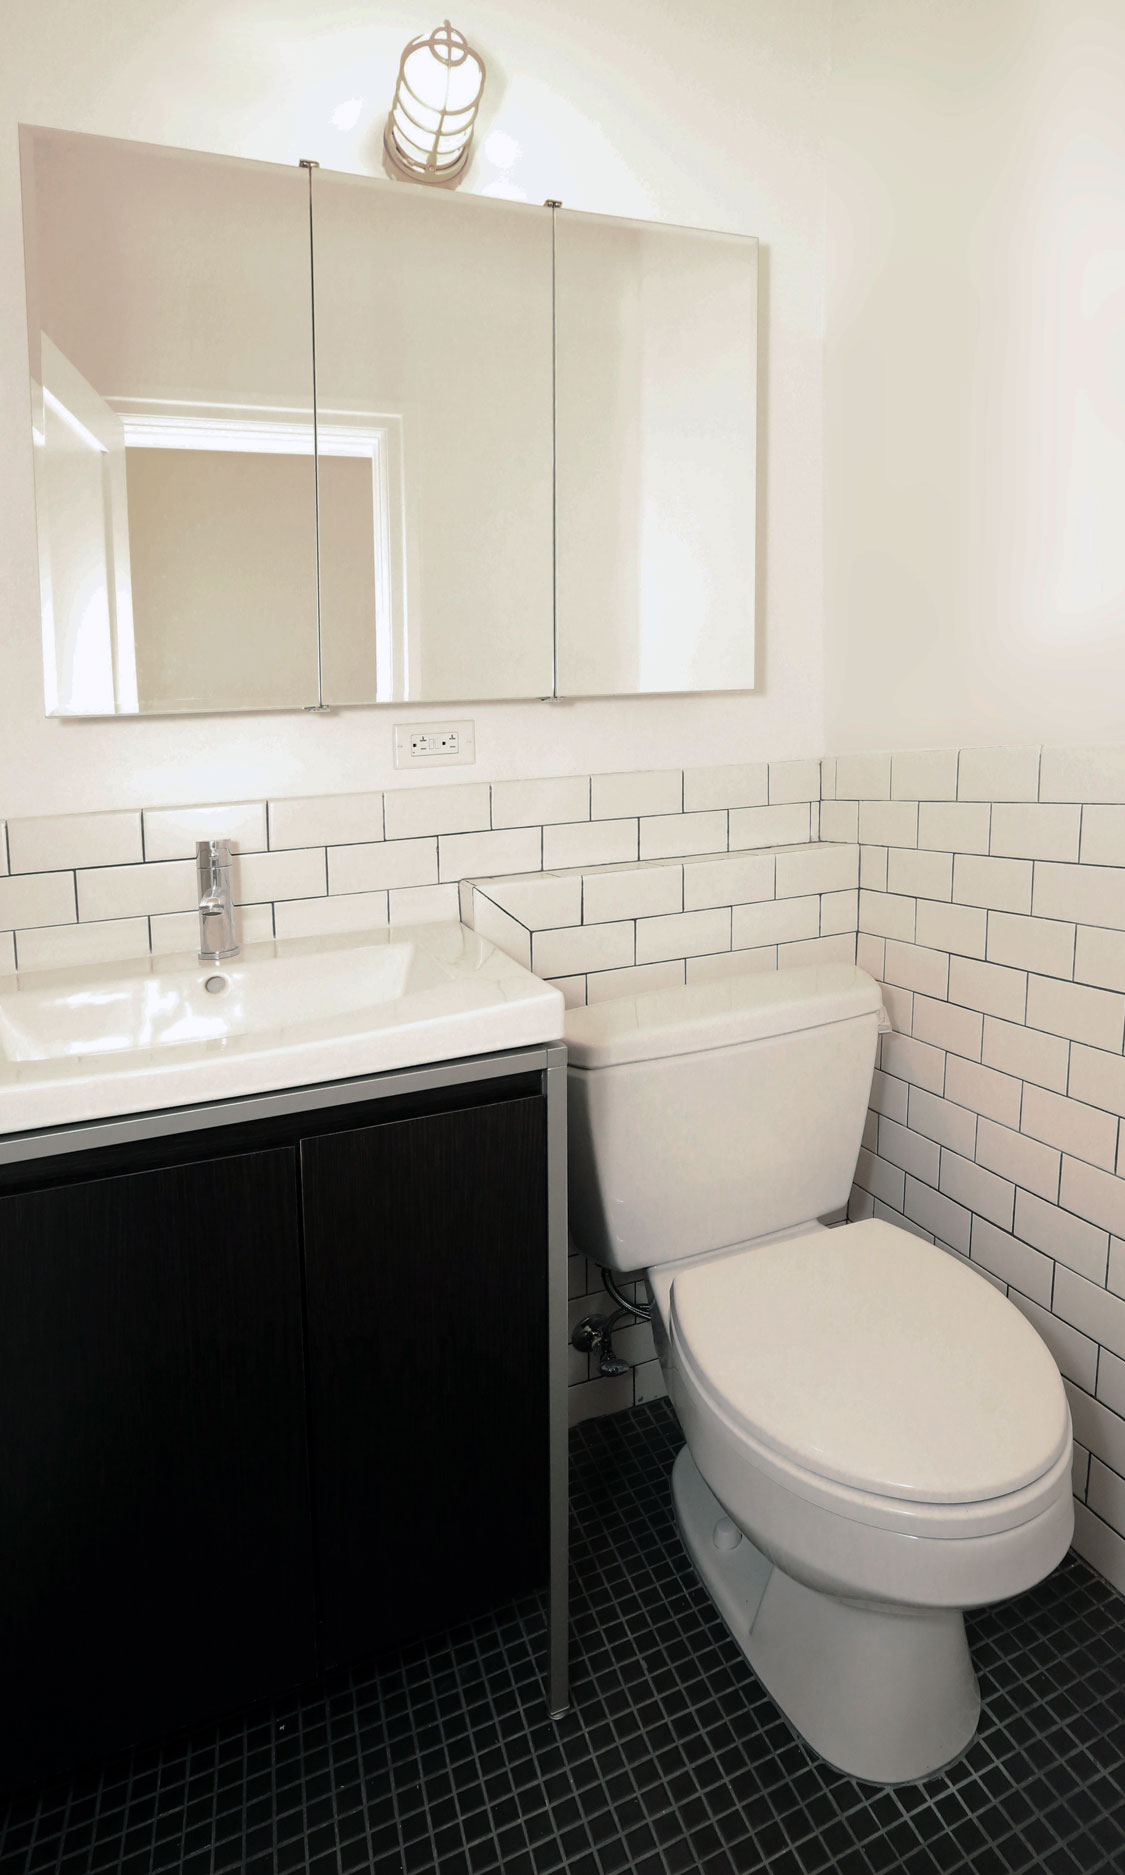 Unit bathroom